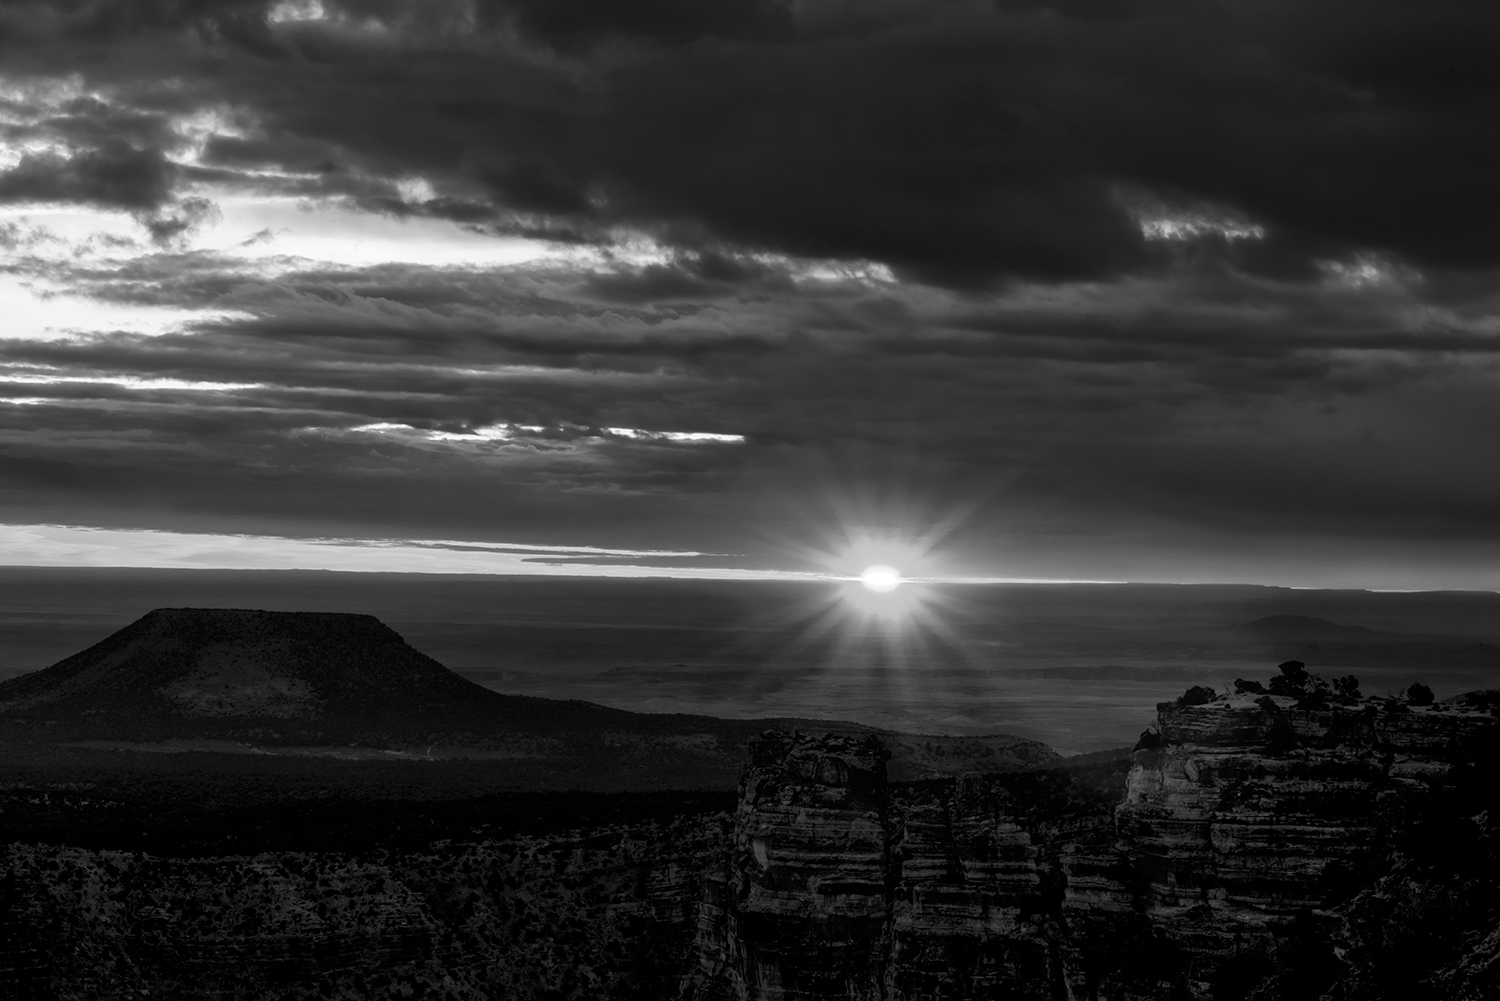 South Rim, Arizona, USAImage no: 18-005732-bw  Click HERE to Add to Cart